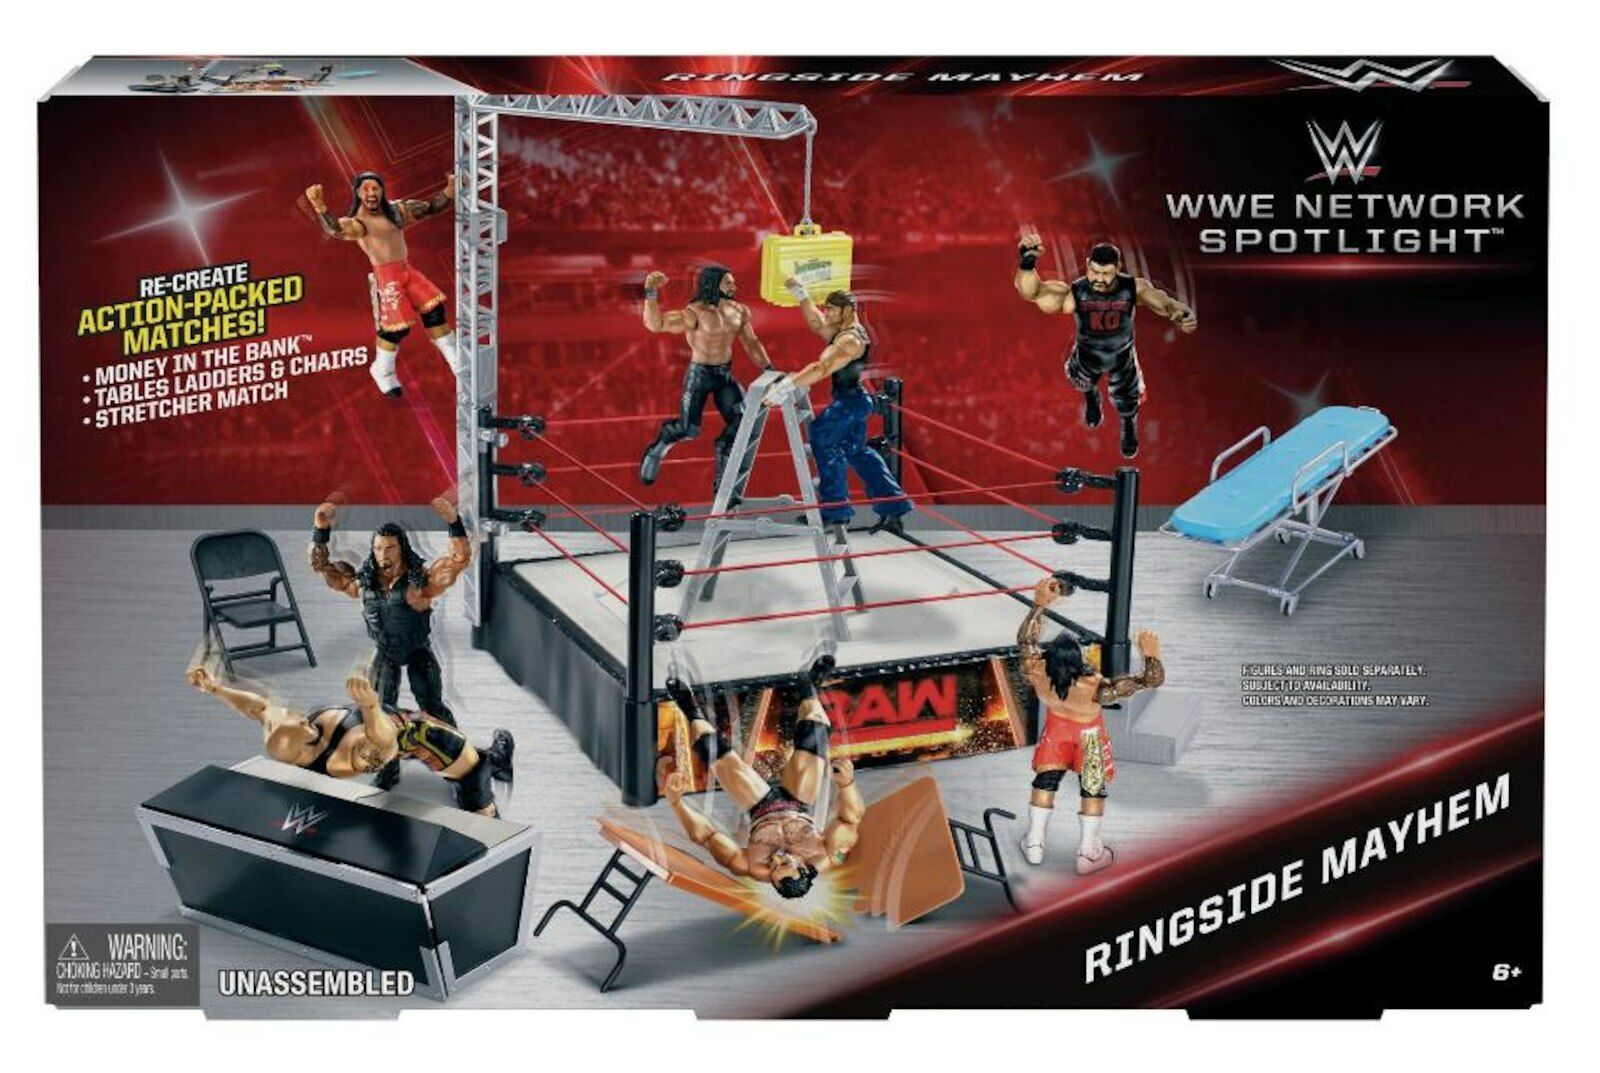 Réseau WWE Spotlumière sacueside  MAYHEM jeu TRU EXCLUSIVE Speaker table MITB  design unique